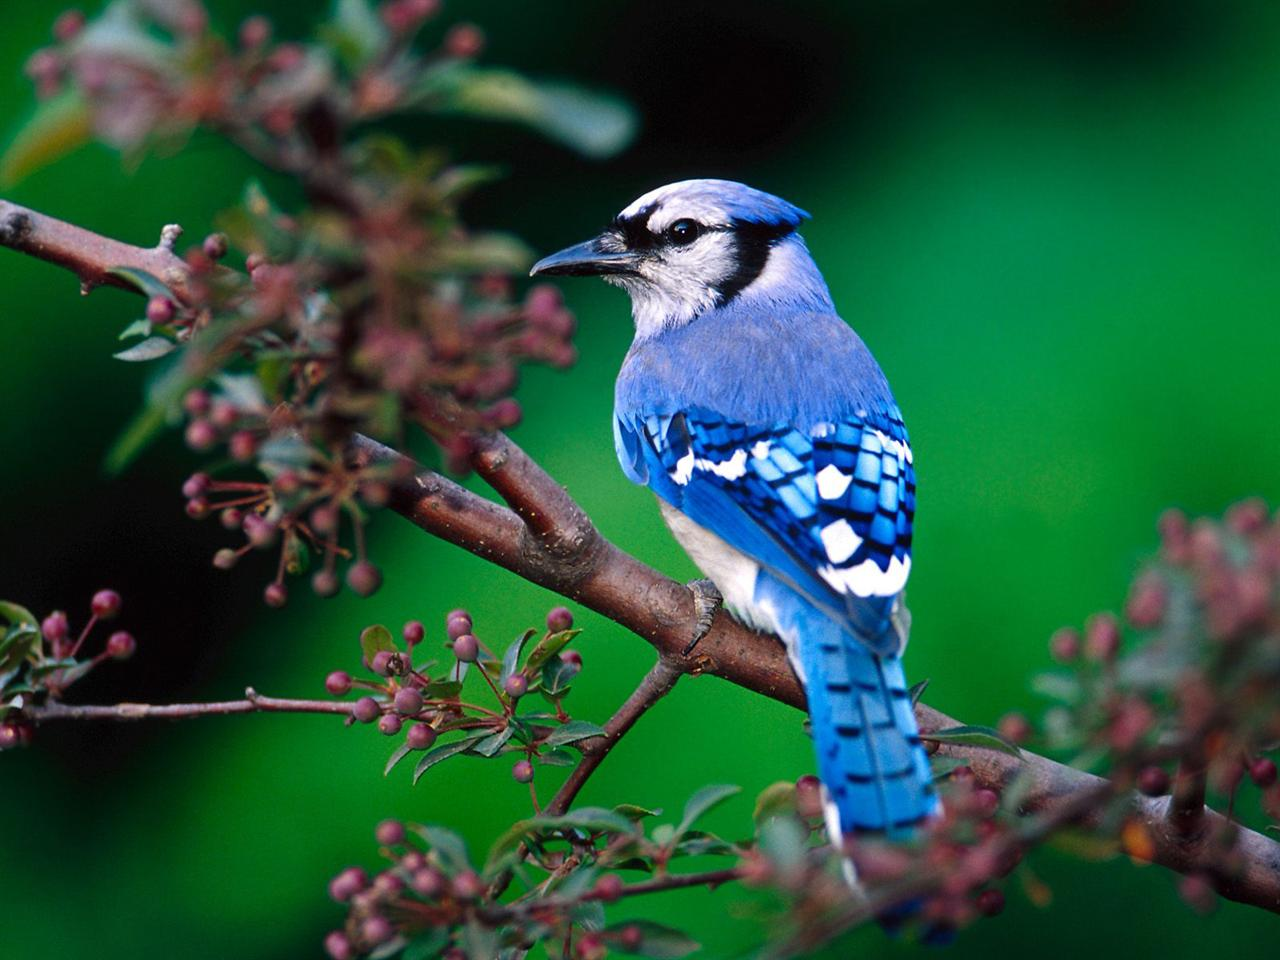 Blue Jay wallpapers and Blue Jay backgrounds for your computer desktop 1280x960